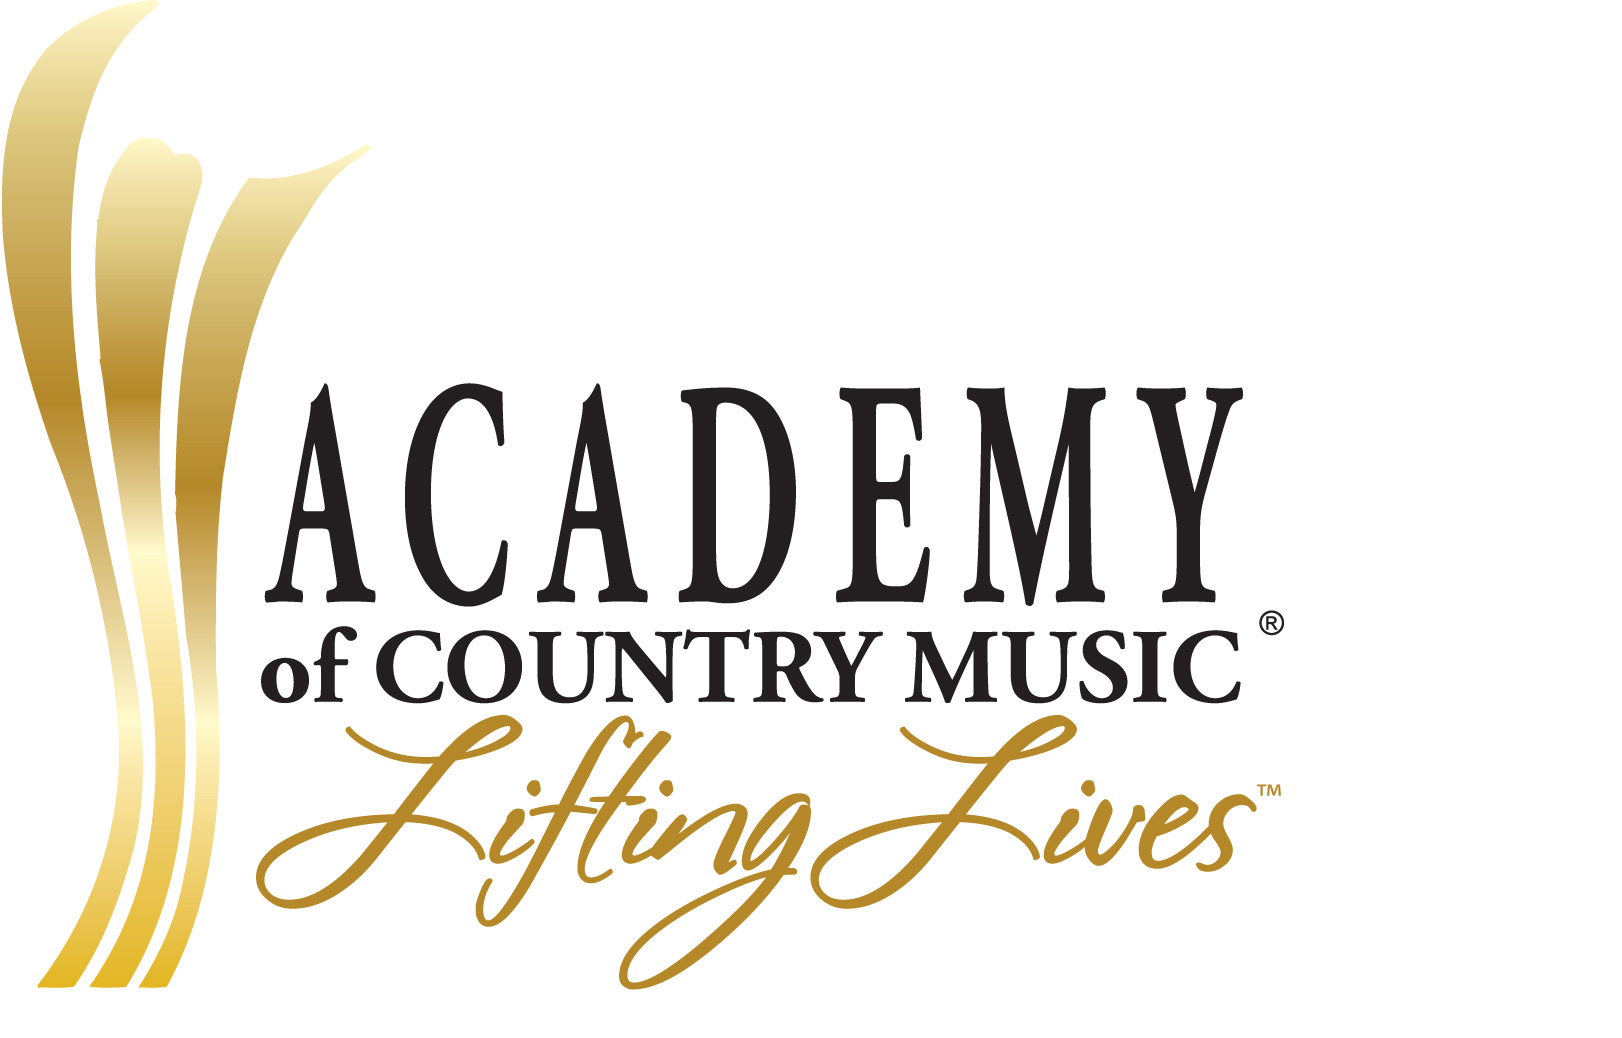 ACADEMY OF COUNTRY MUSIC CHARITABLE FOUNDATION INC | crowdfunding | online fundraising